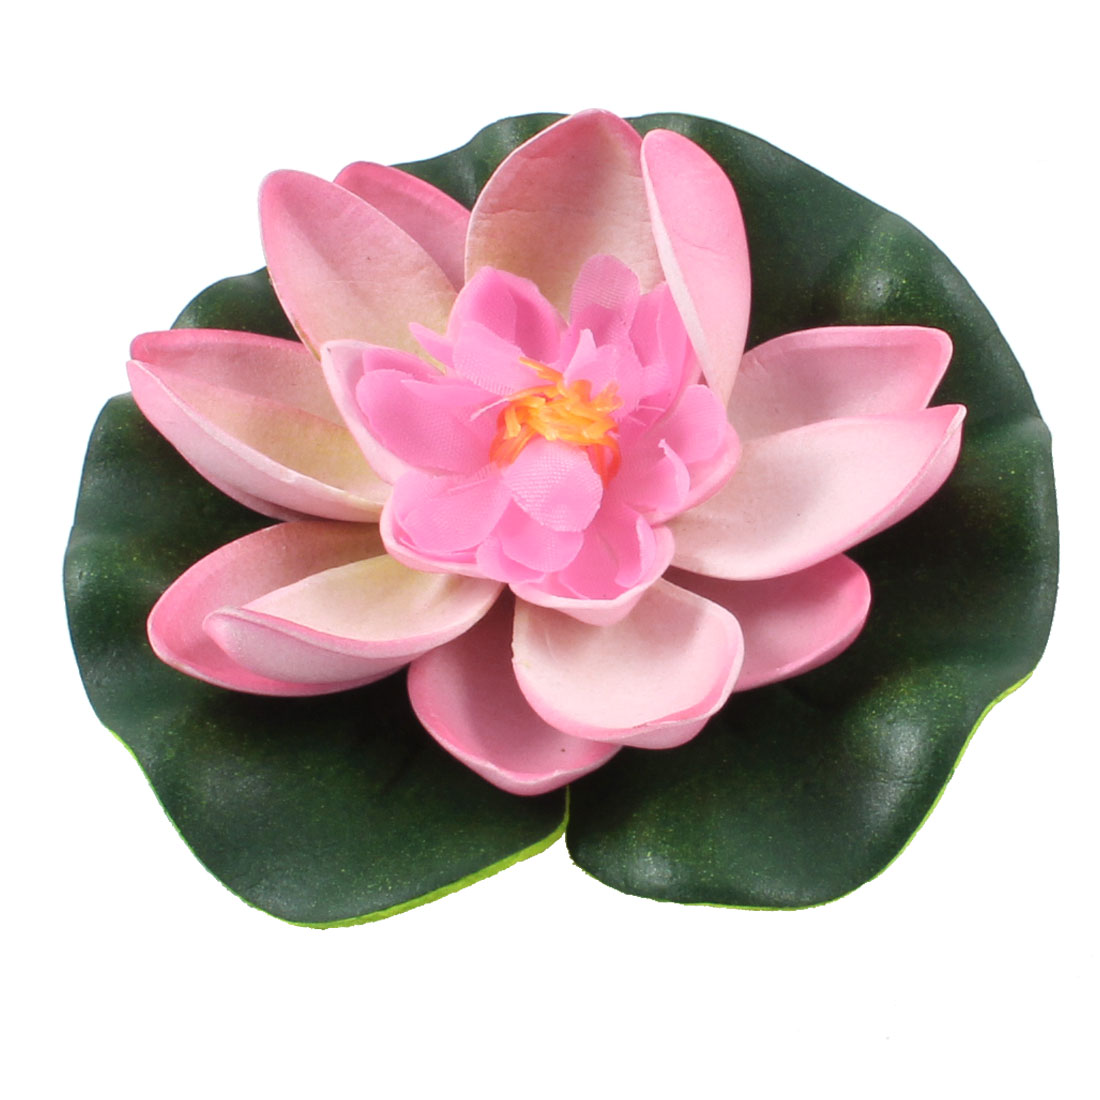 "Fish Tank Pale Pink Green 3.7"" Dia Foam Lotus Floral Floating Plant Decor"